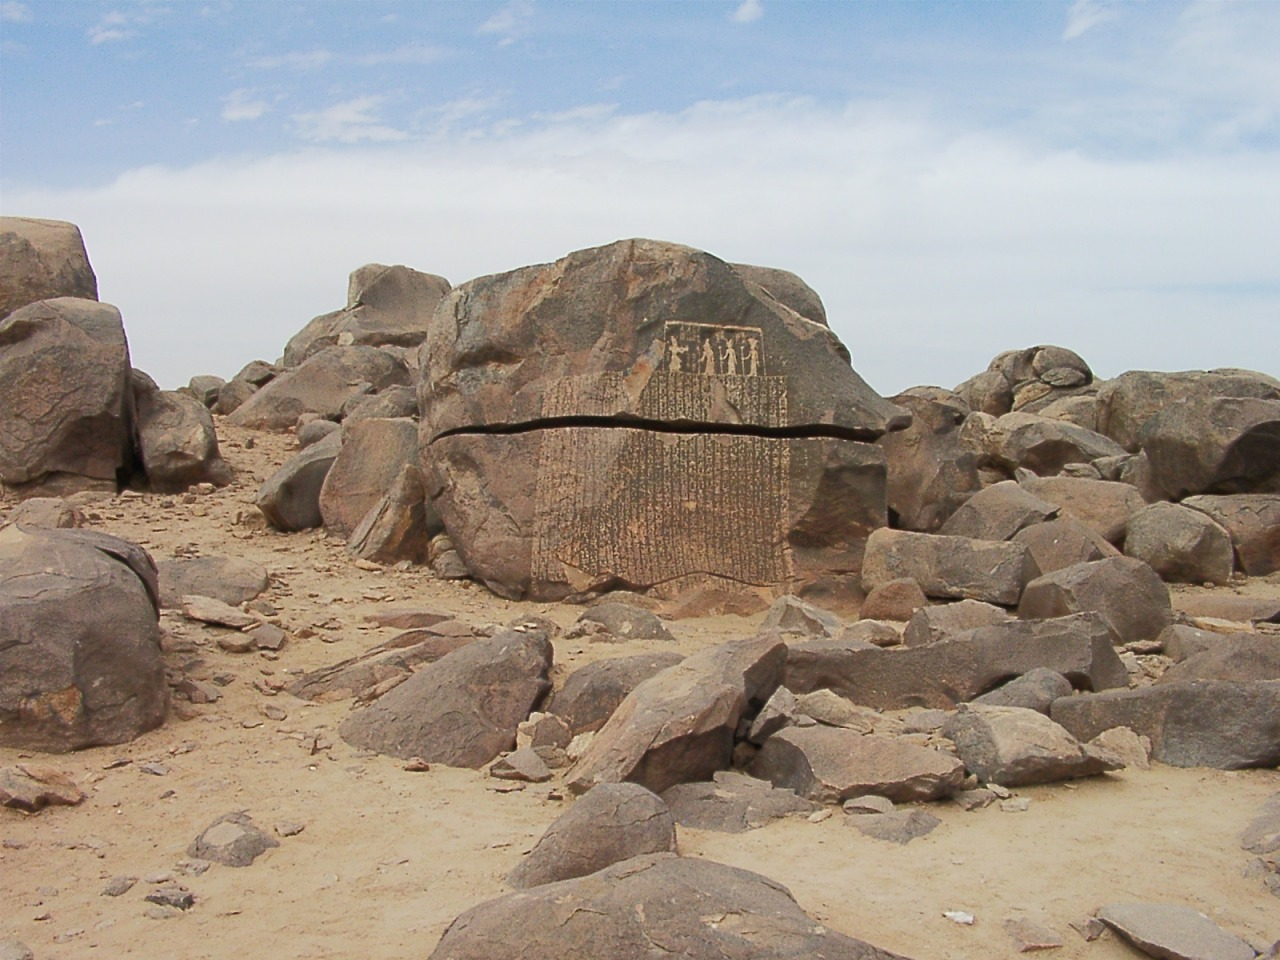 The Ancient Egyptian Famine-stela on Sehel Island, near Aswan. It is thought to date to the Ptolemaic dynasty, 332–31 BC, though speaks of the reign of 3rd dynasty king Djoser. Photo courtesy & taken by HoremWeb